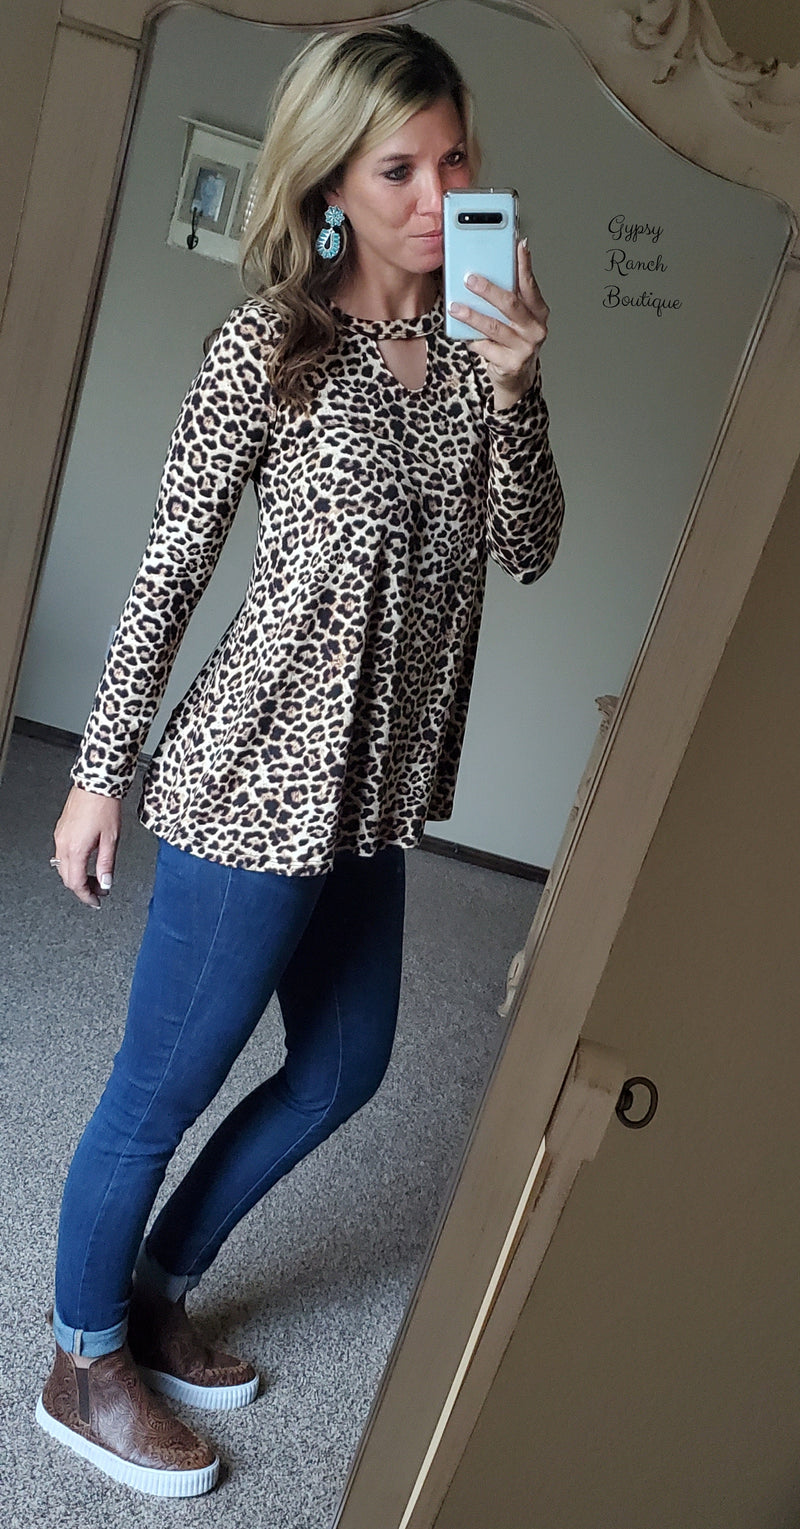 Old Dominion Leopard Top - Also in Plus Size